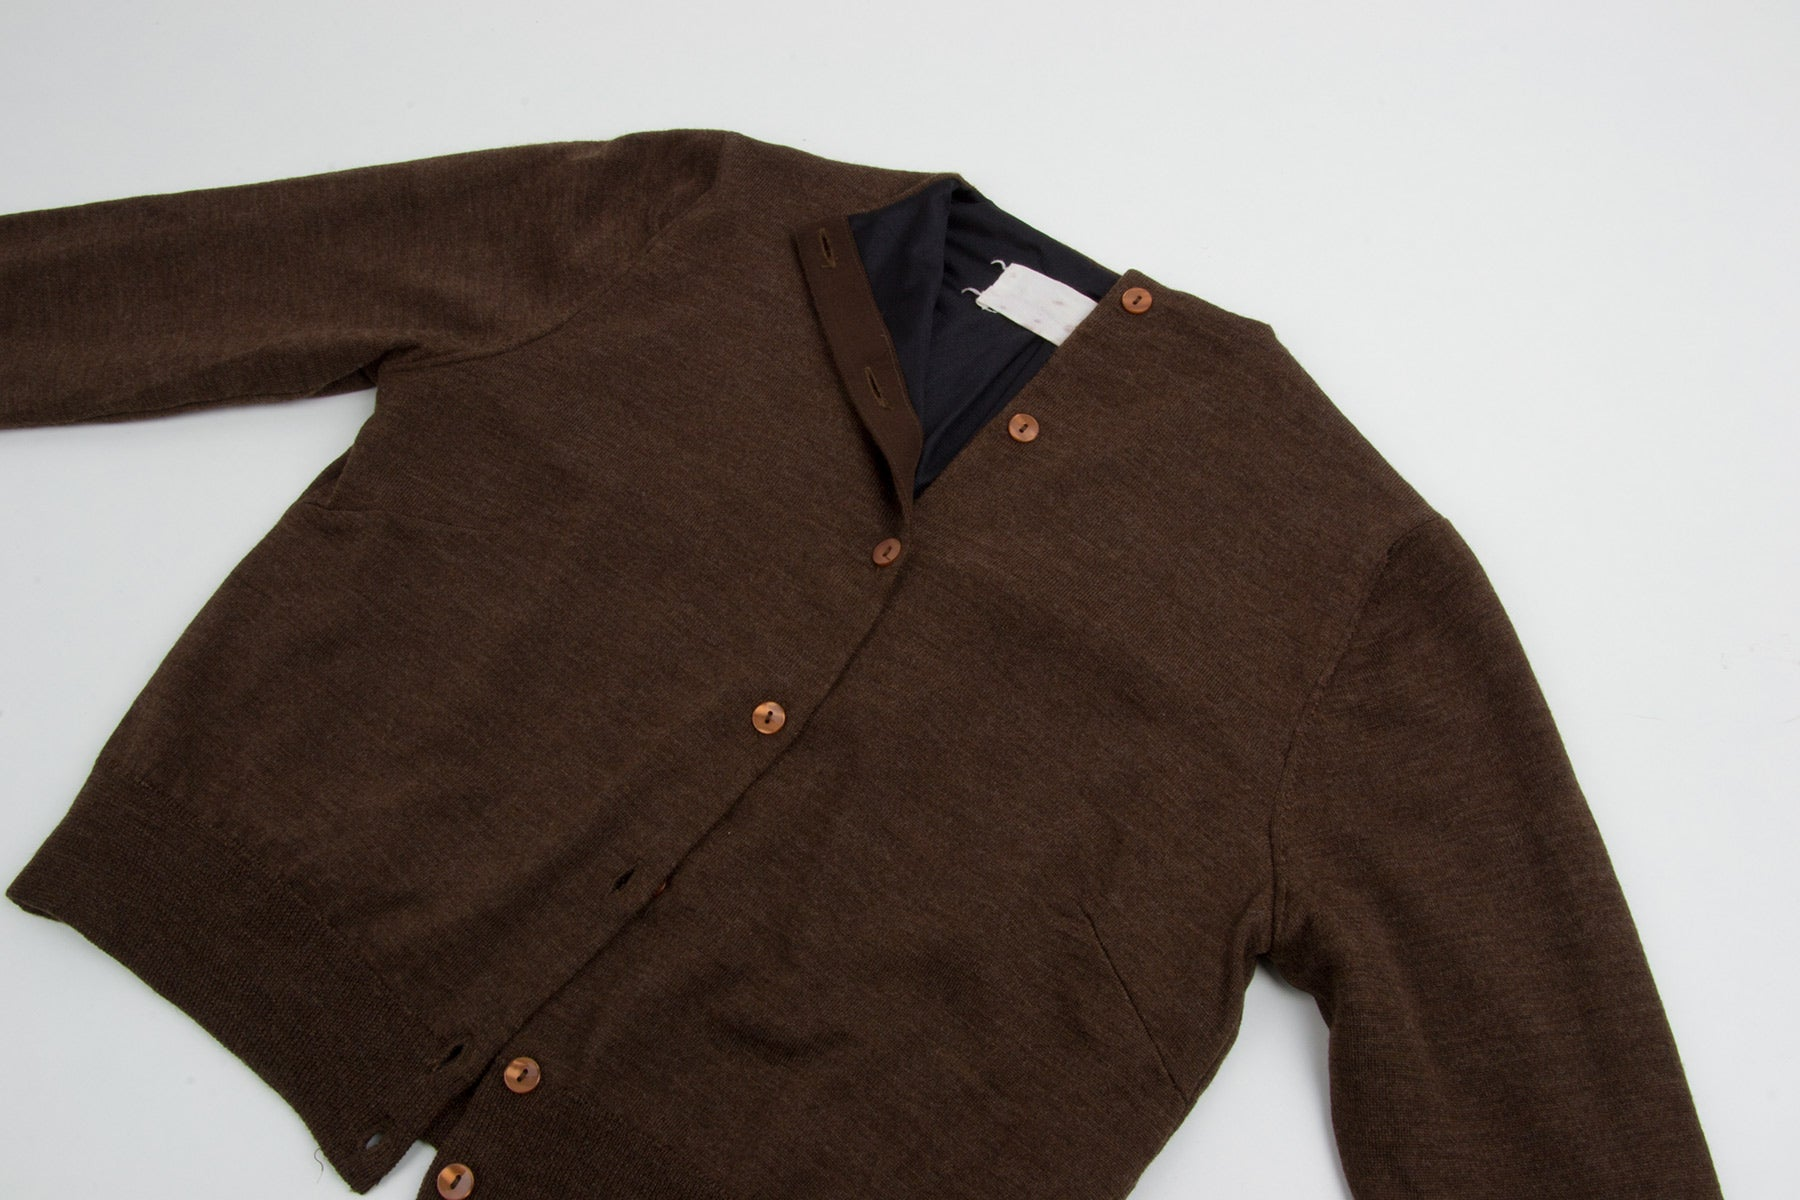 1995 A/W LINED WOOL CARDIGAN BY MISS DEANNA